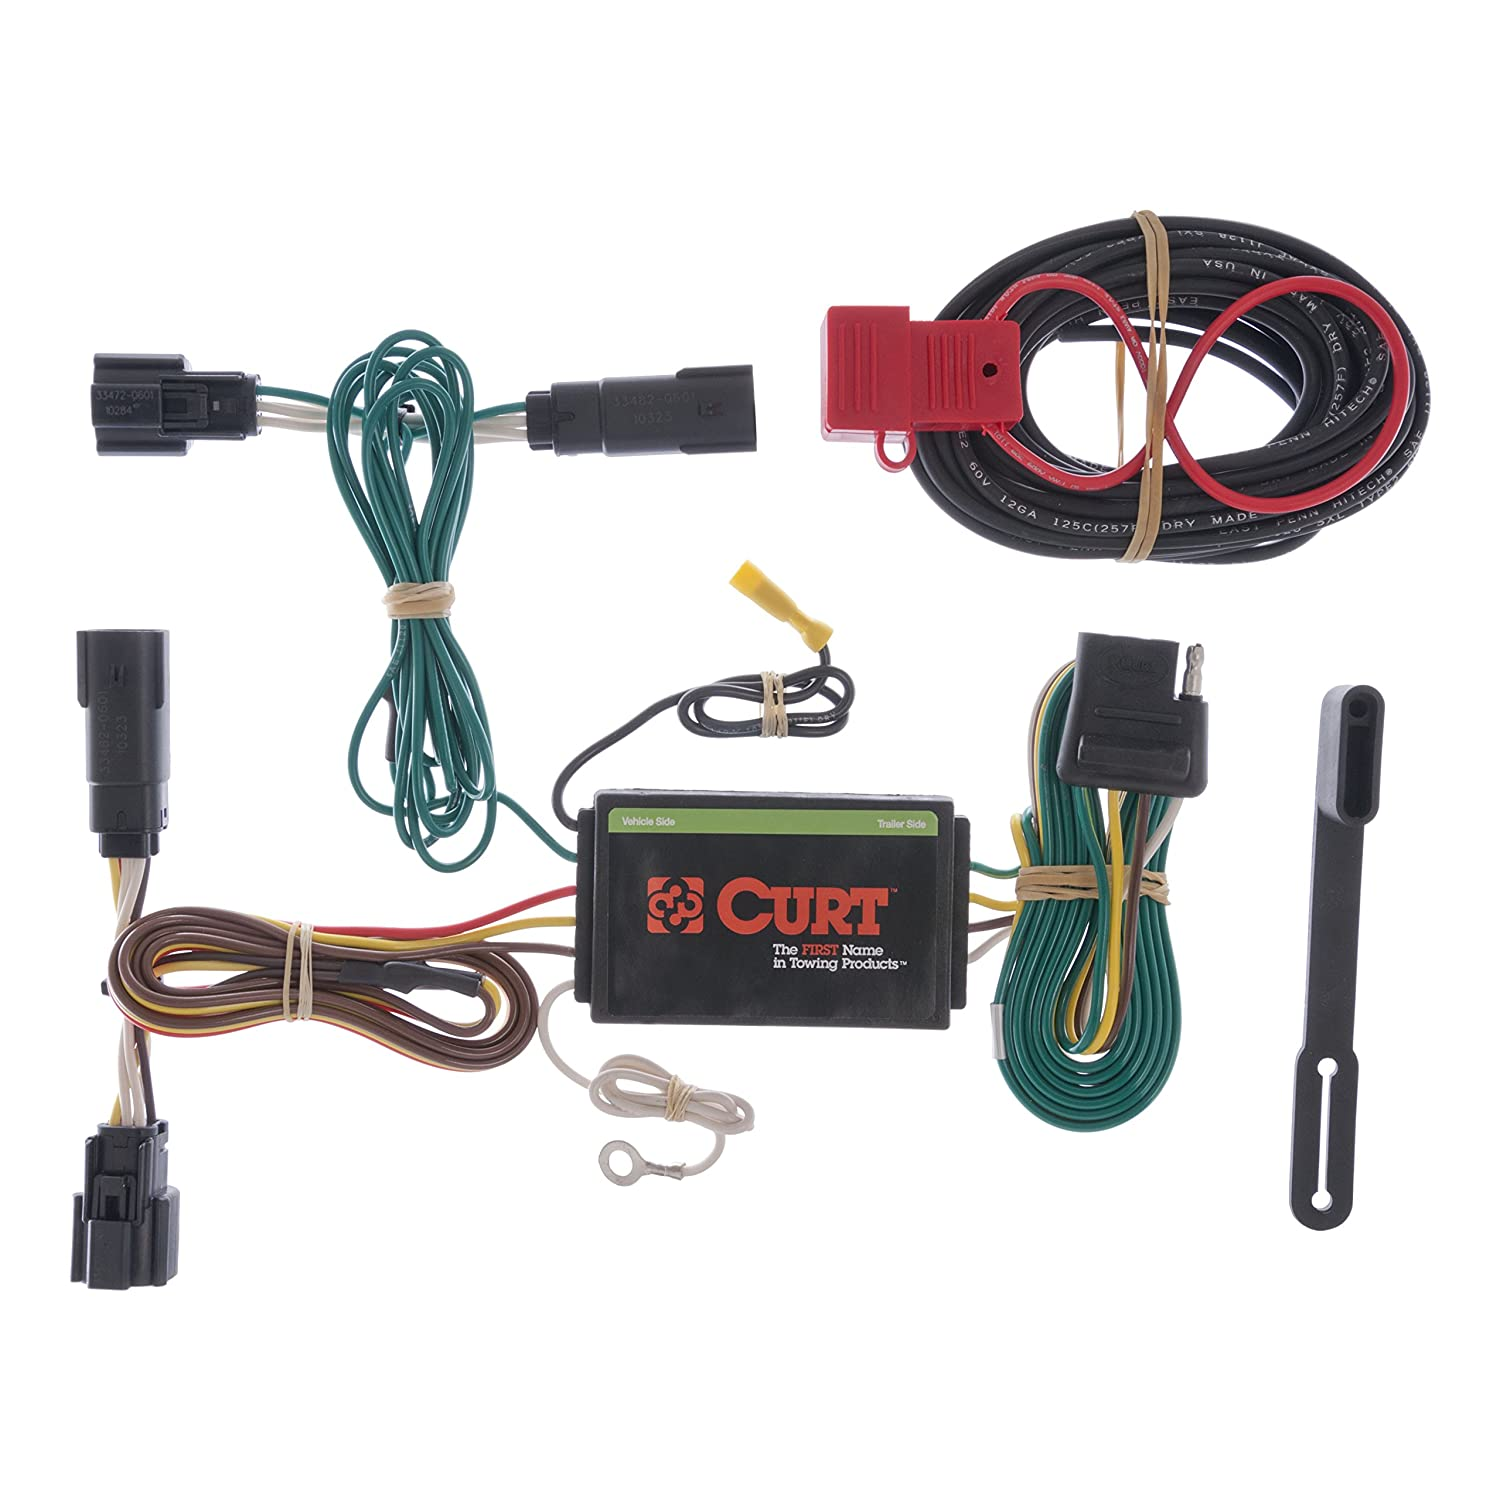 81ohhw2GXXL._SL1500_ amazon com curt 56120 custom wiring harness automotive custom wiring harness at bayanpartner.co